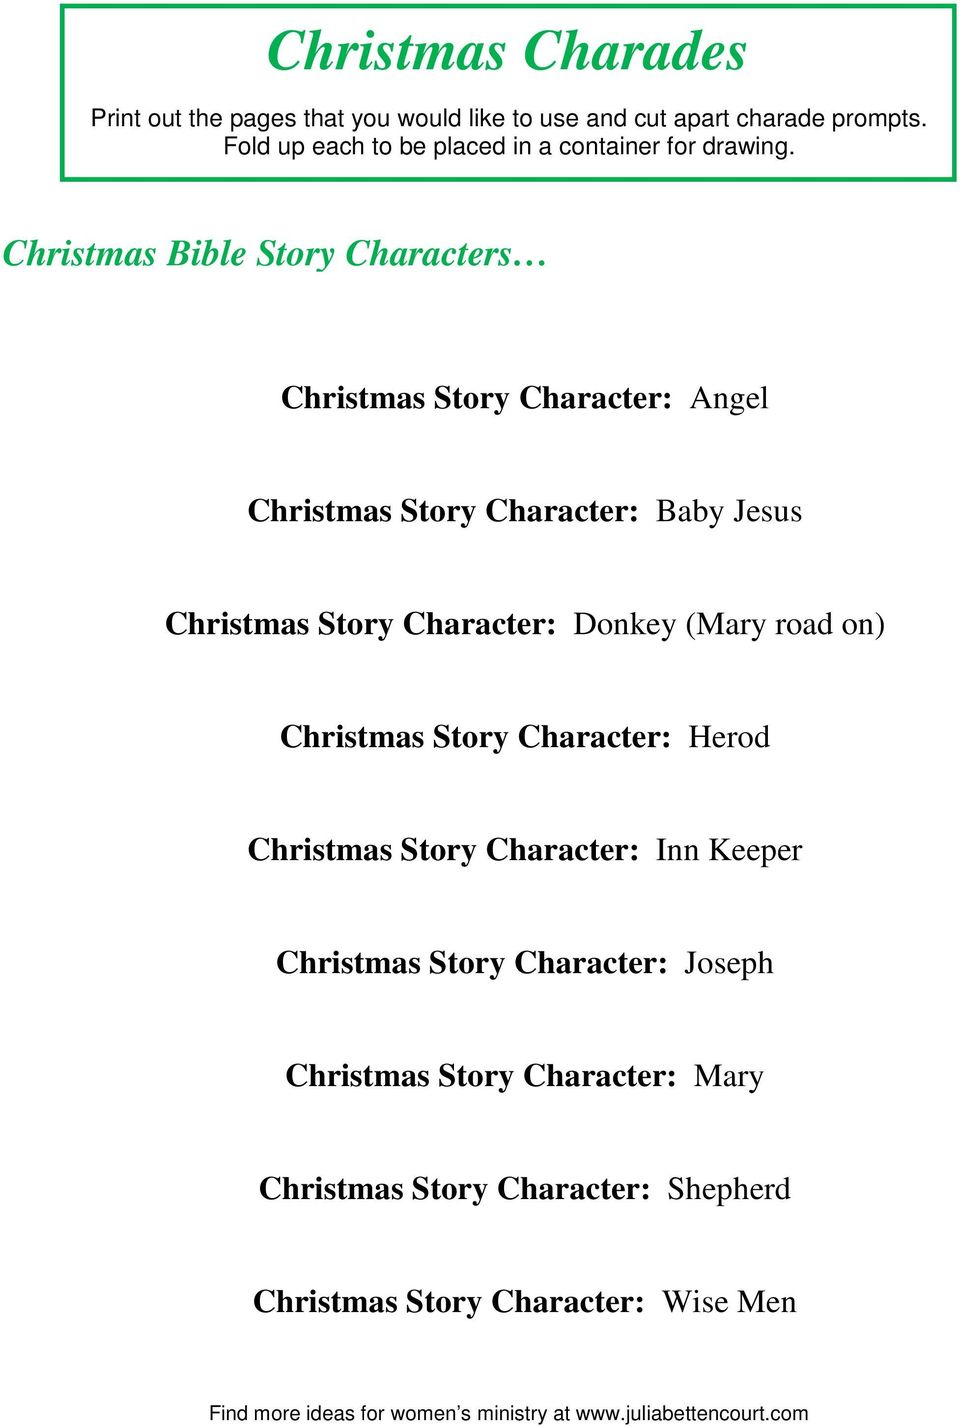 Christmas Story From The Bible.Christmas Charades Christmas Story Character Angel